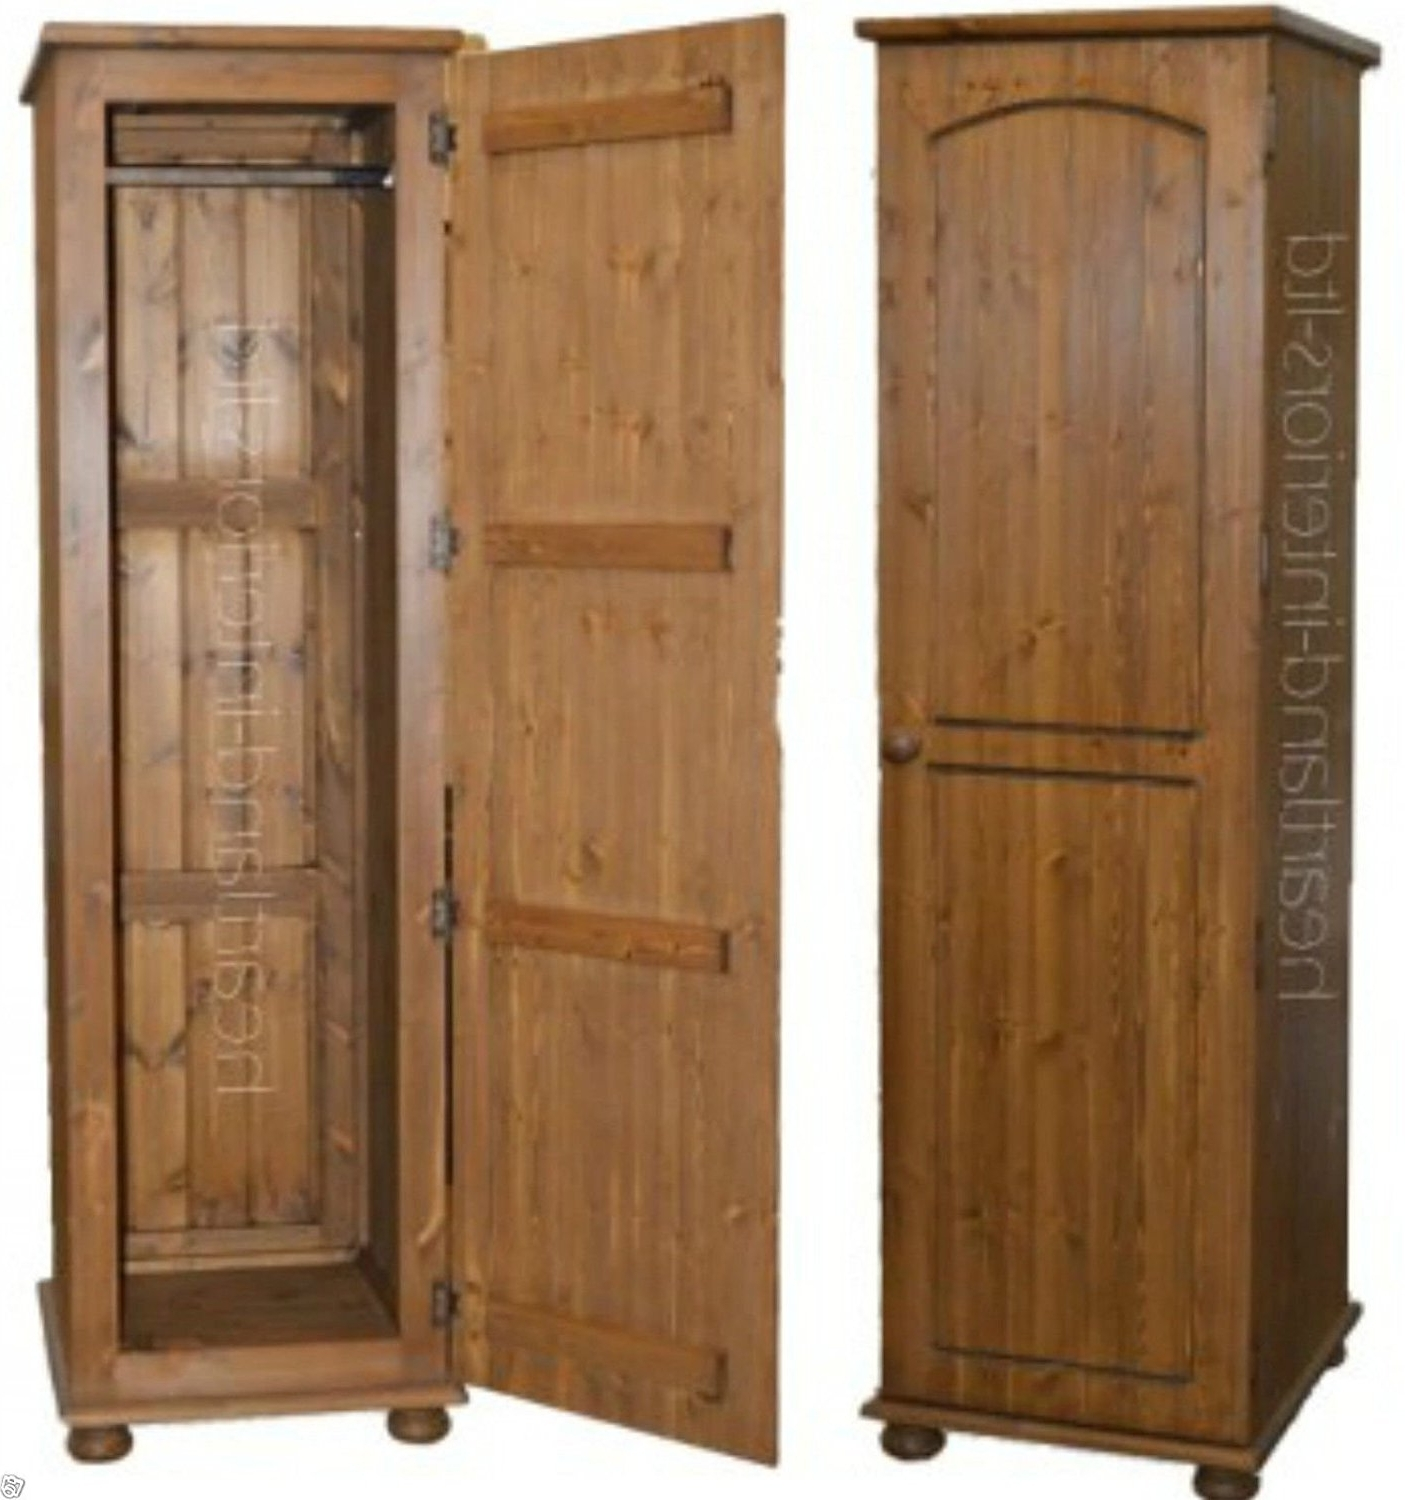 Famous Solid Pine 1 Door Single Wardrobe, Handcrafted & Waxed Pine Pertaining To Single Pine Wardrobes (View 4 of 15)